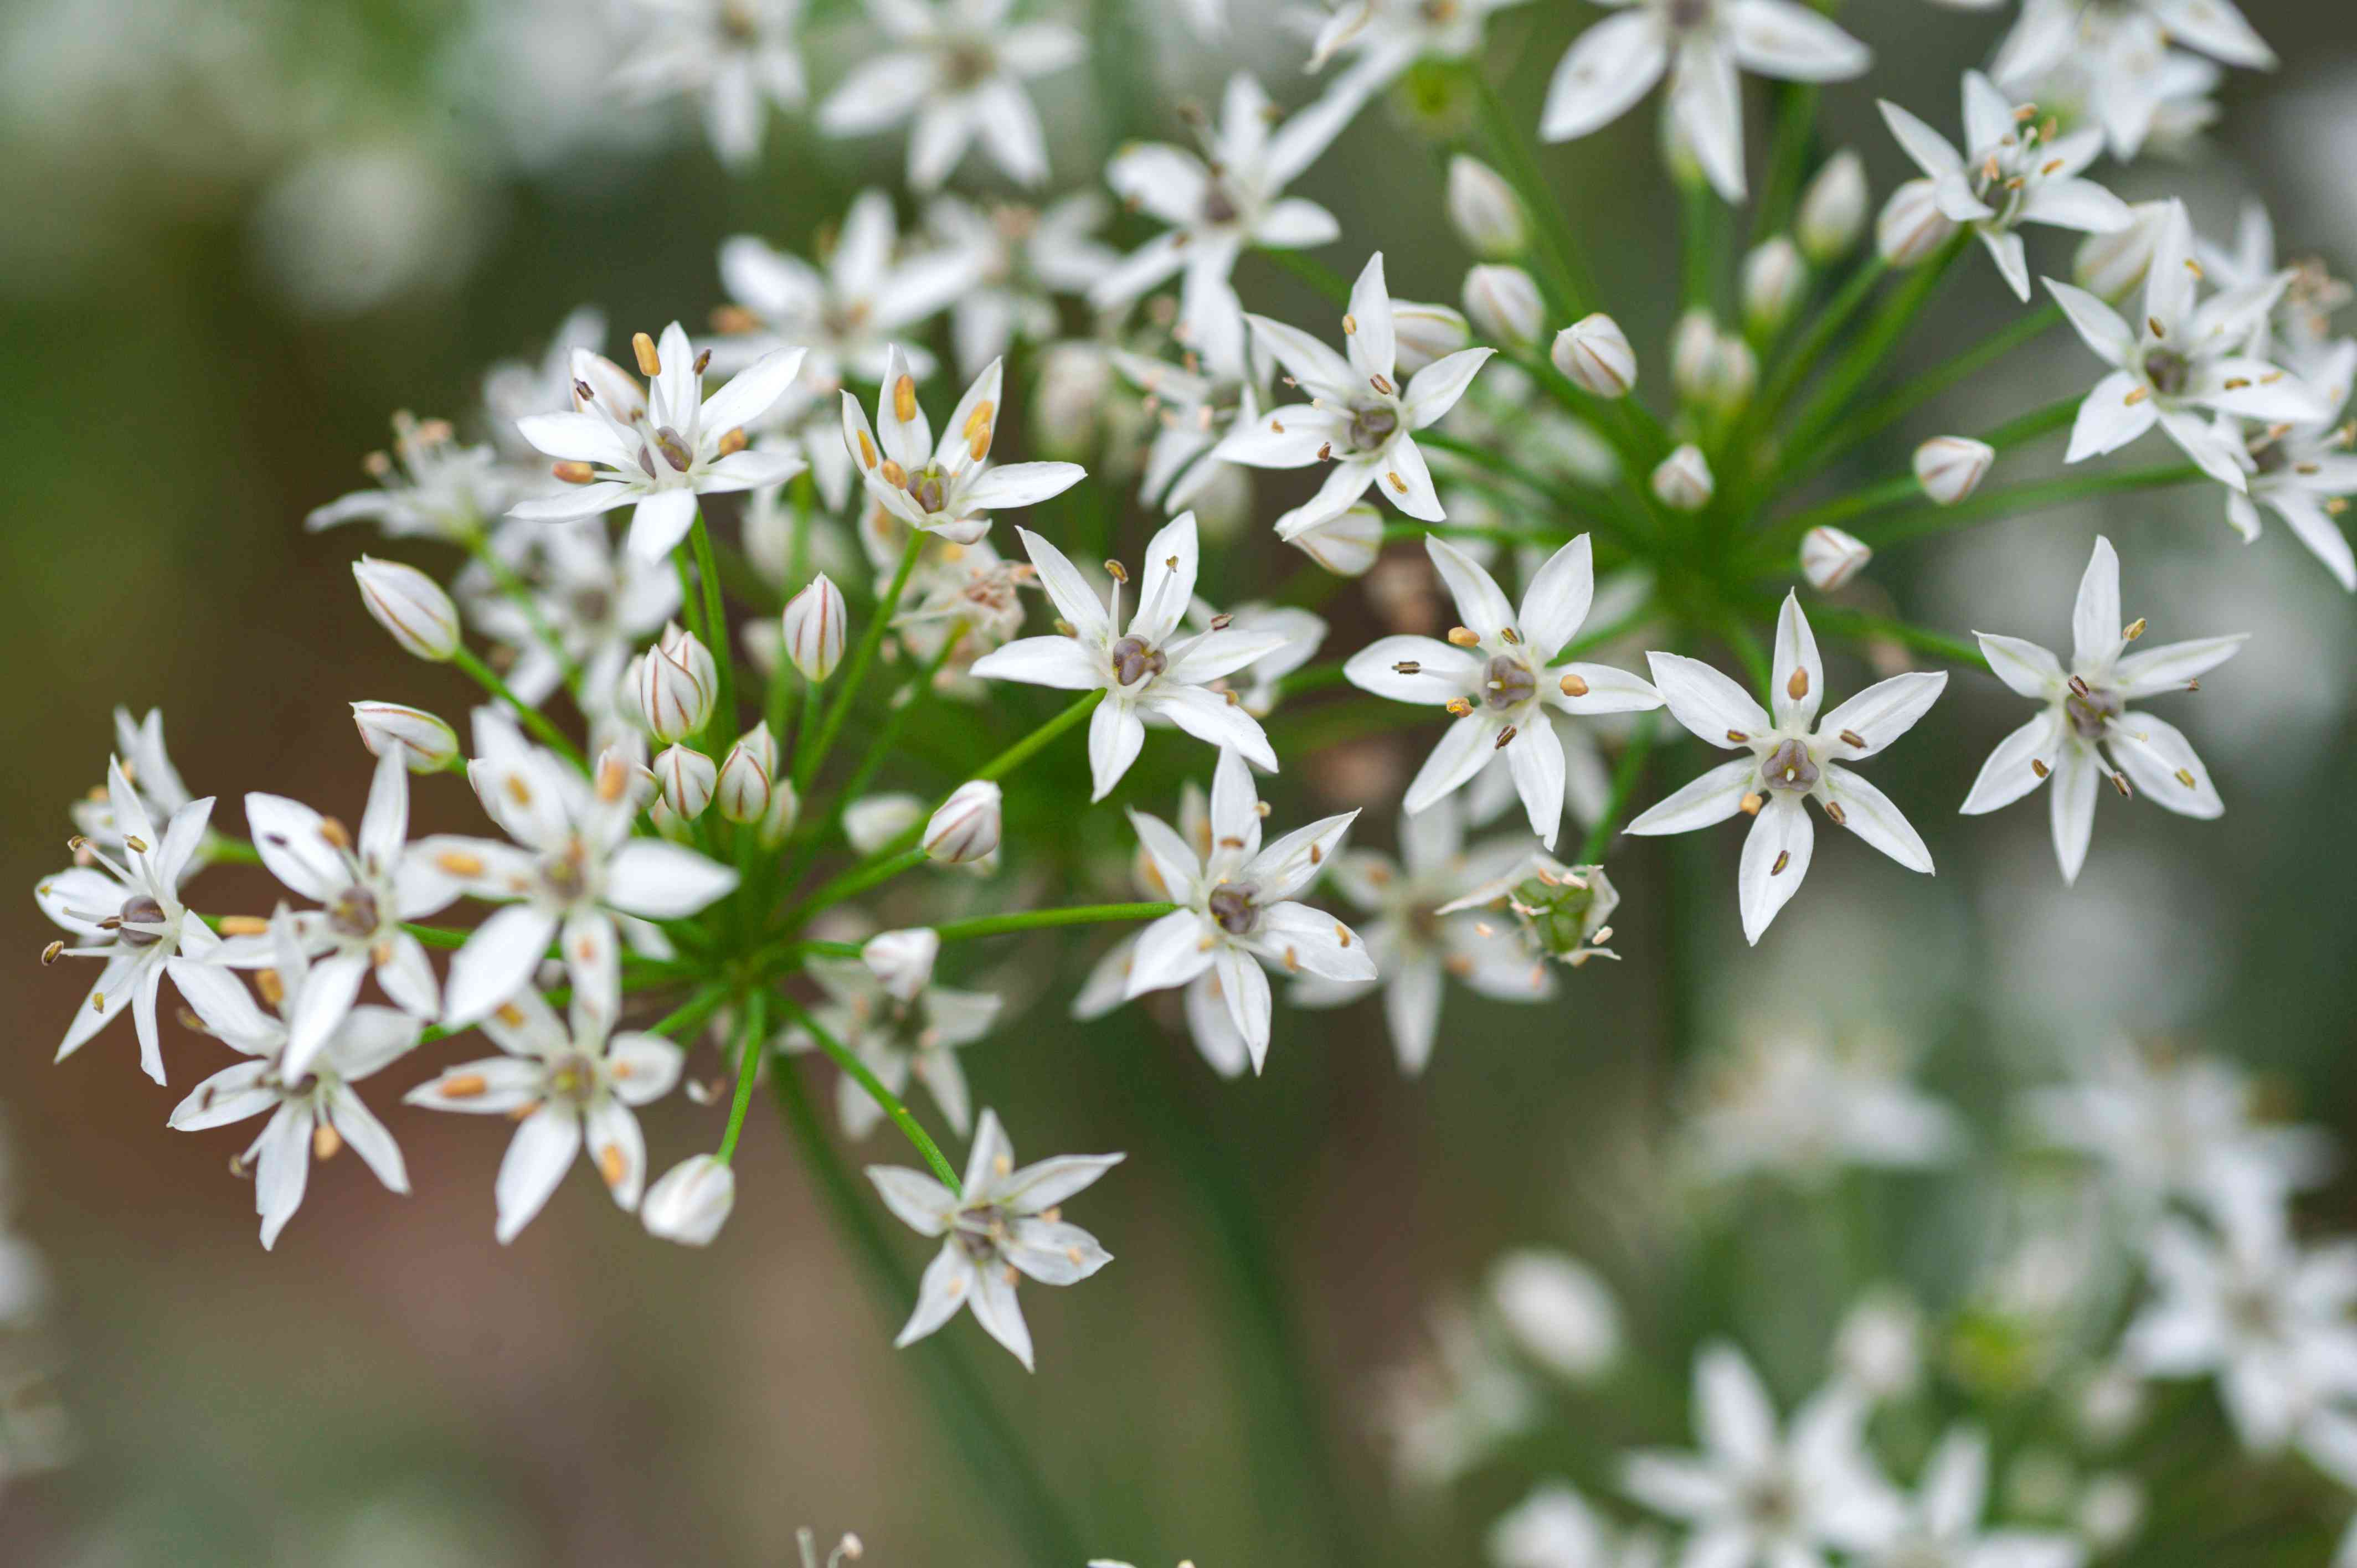 Garlic chives plant with white star-shaped flowers and buds clustered together closeup